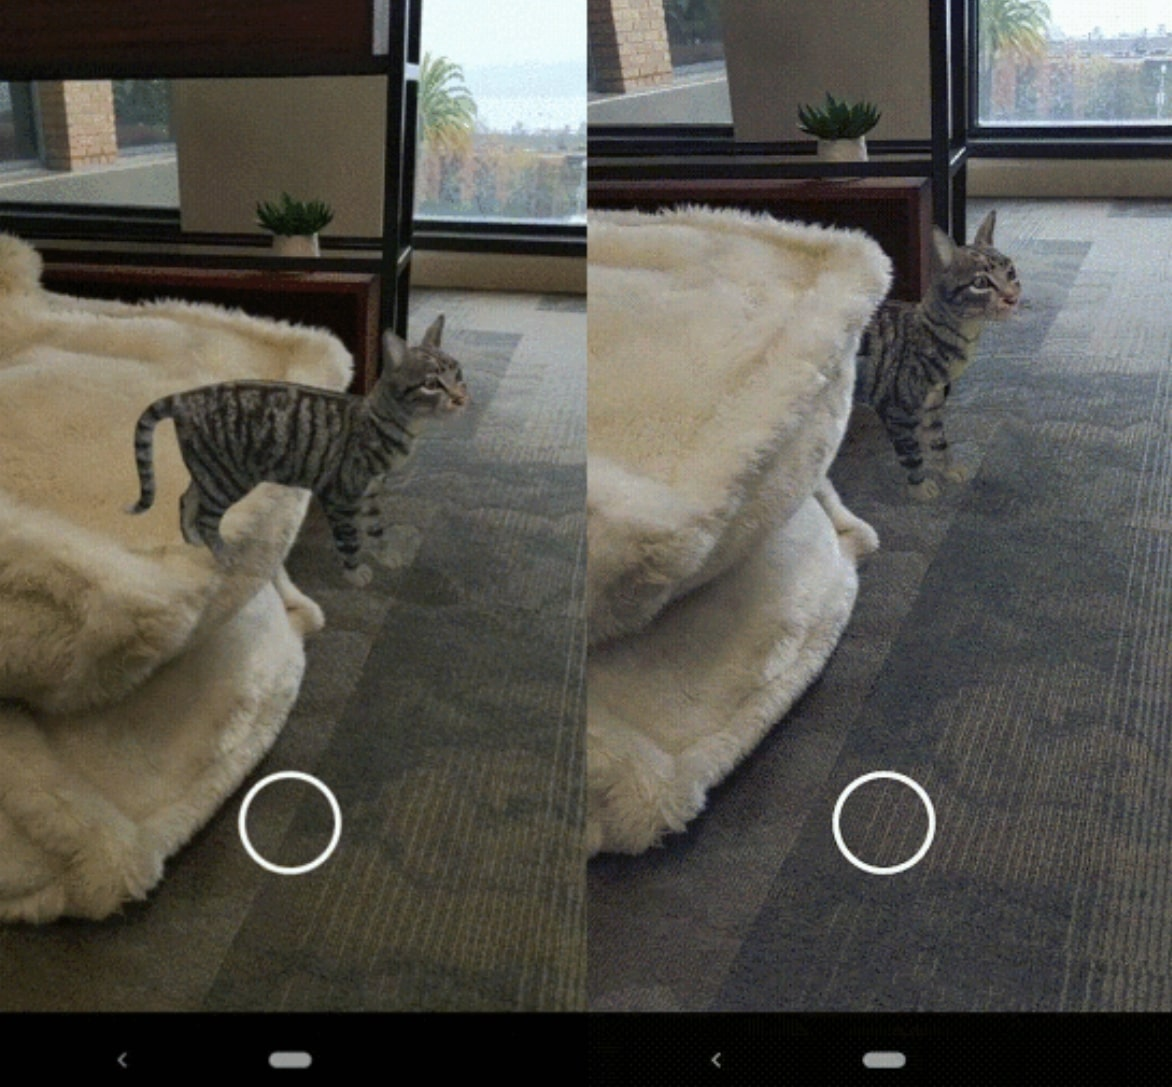 A virtual cat with occlusion turned off and occlusion turned on with Google's ARCore Depth API